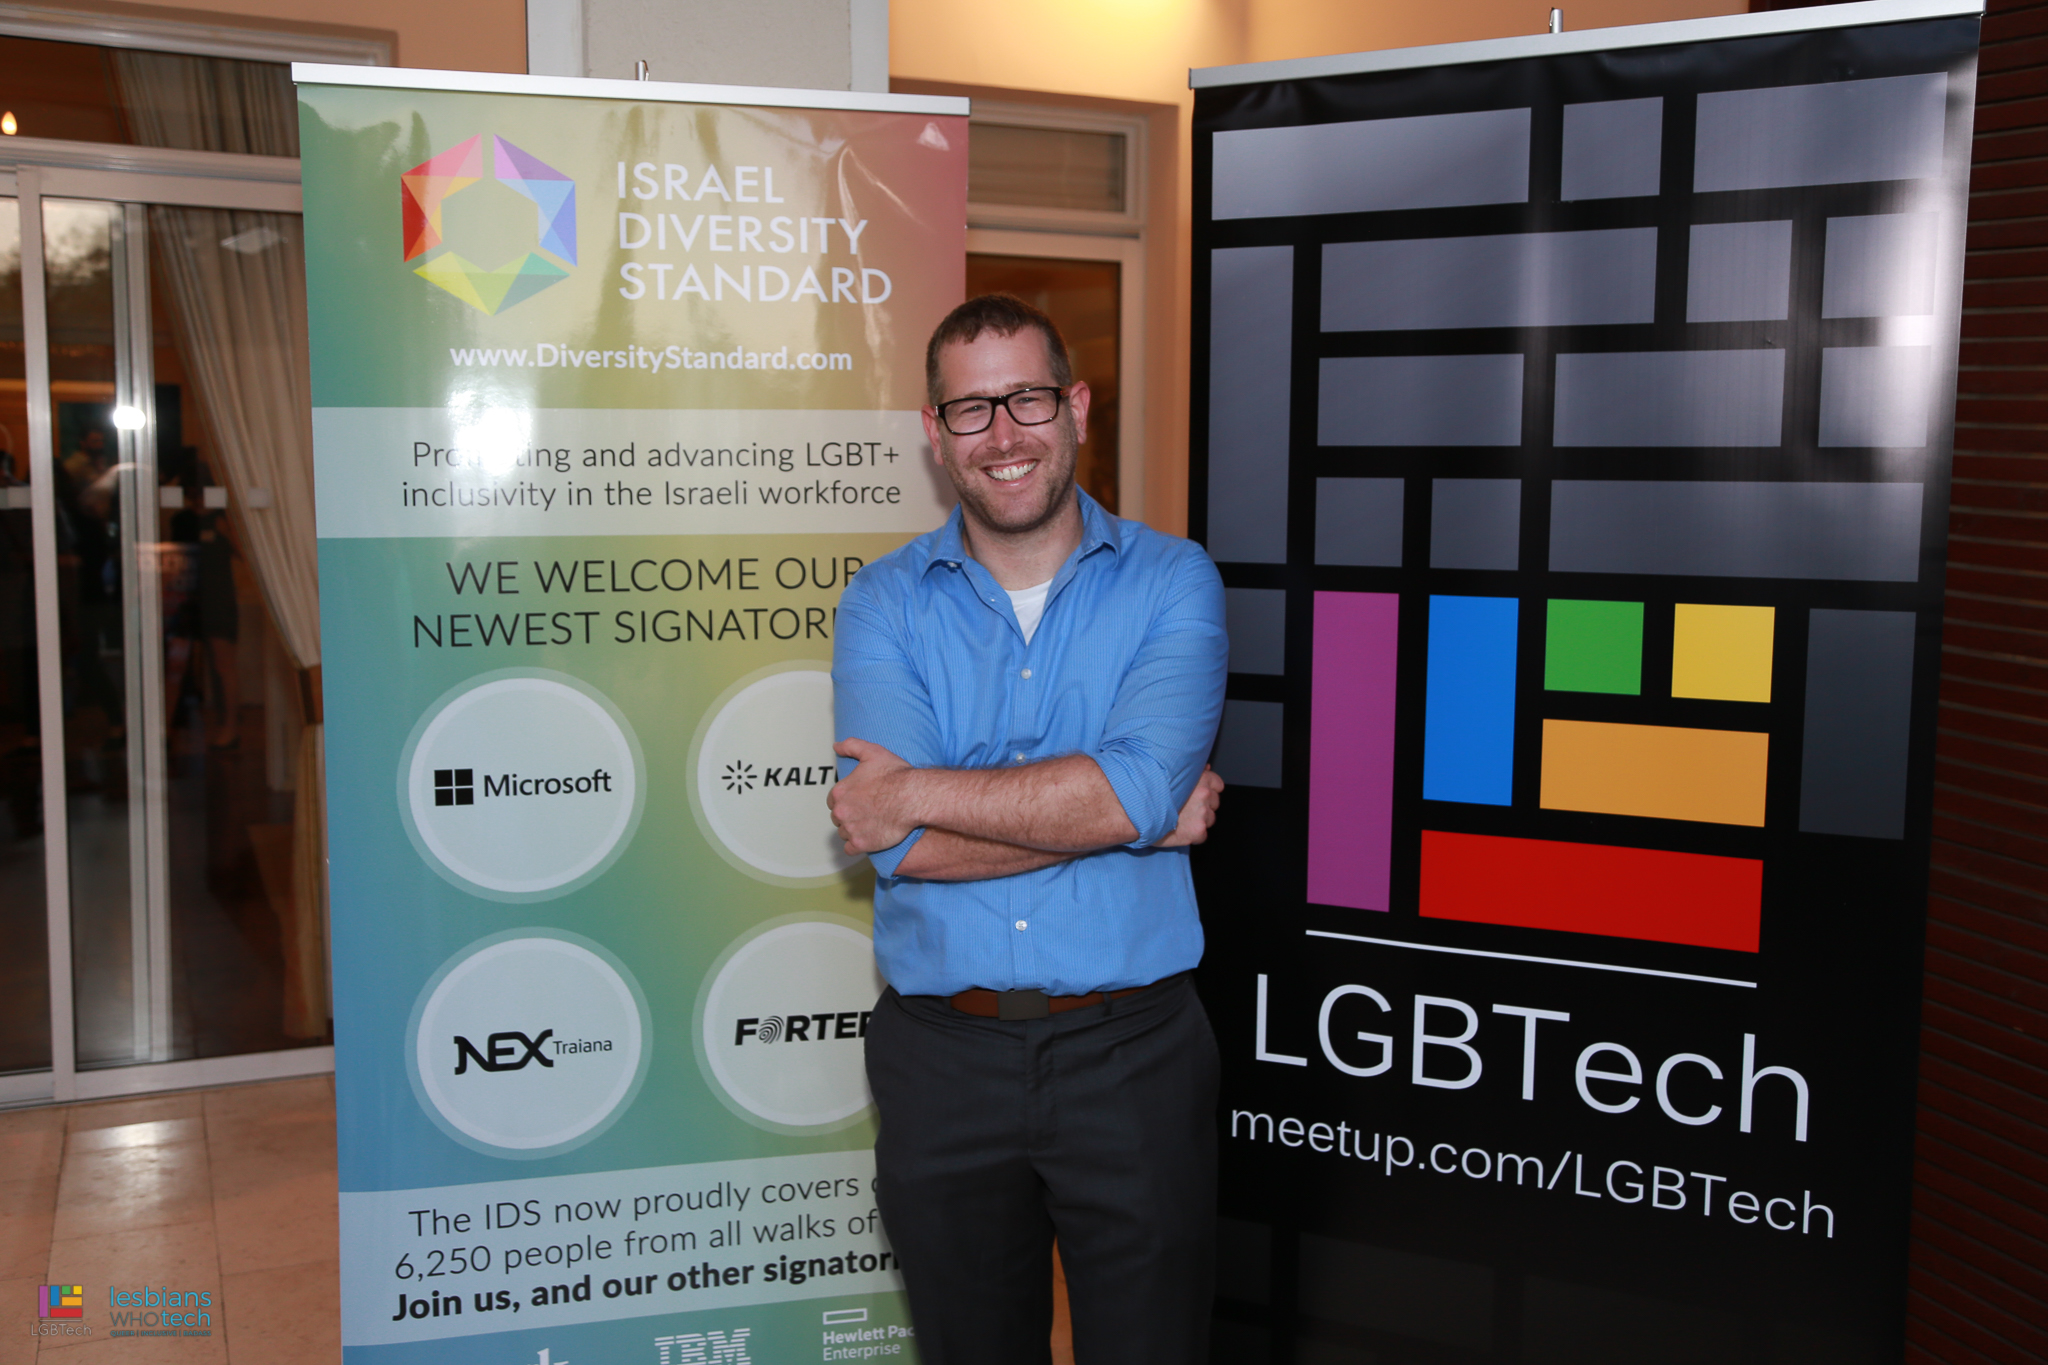 LGBTech, Love is Great Britain, LGBT, Pride 2016, Israel, Lesbians Who Tech, Shachar Grembek